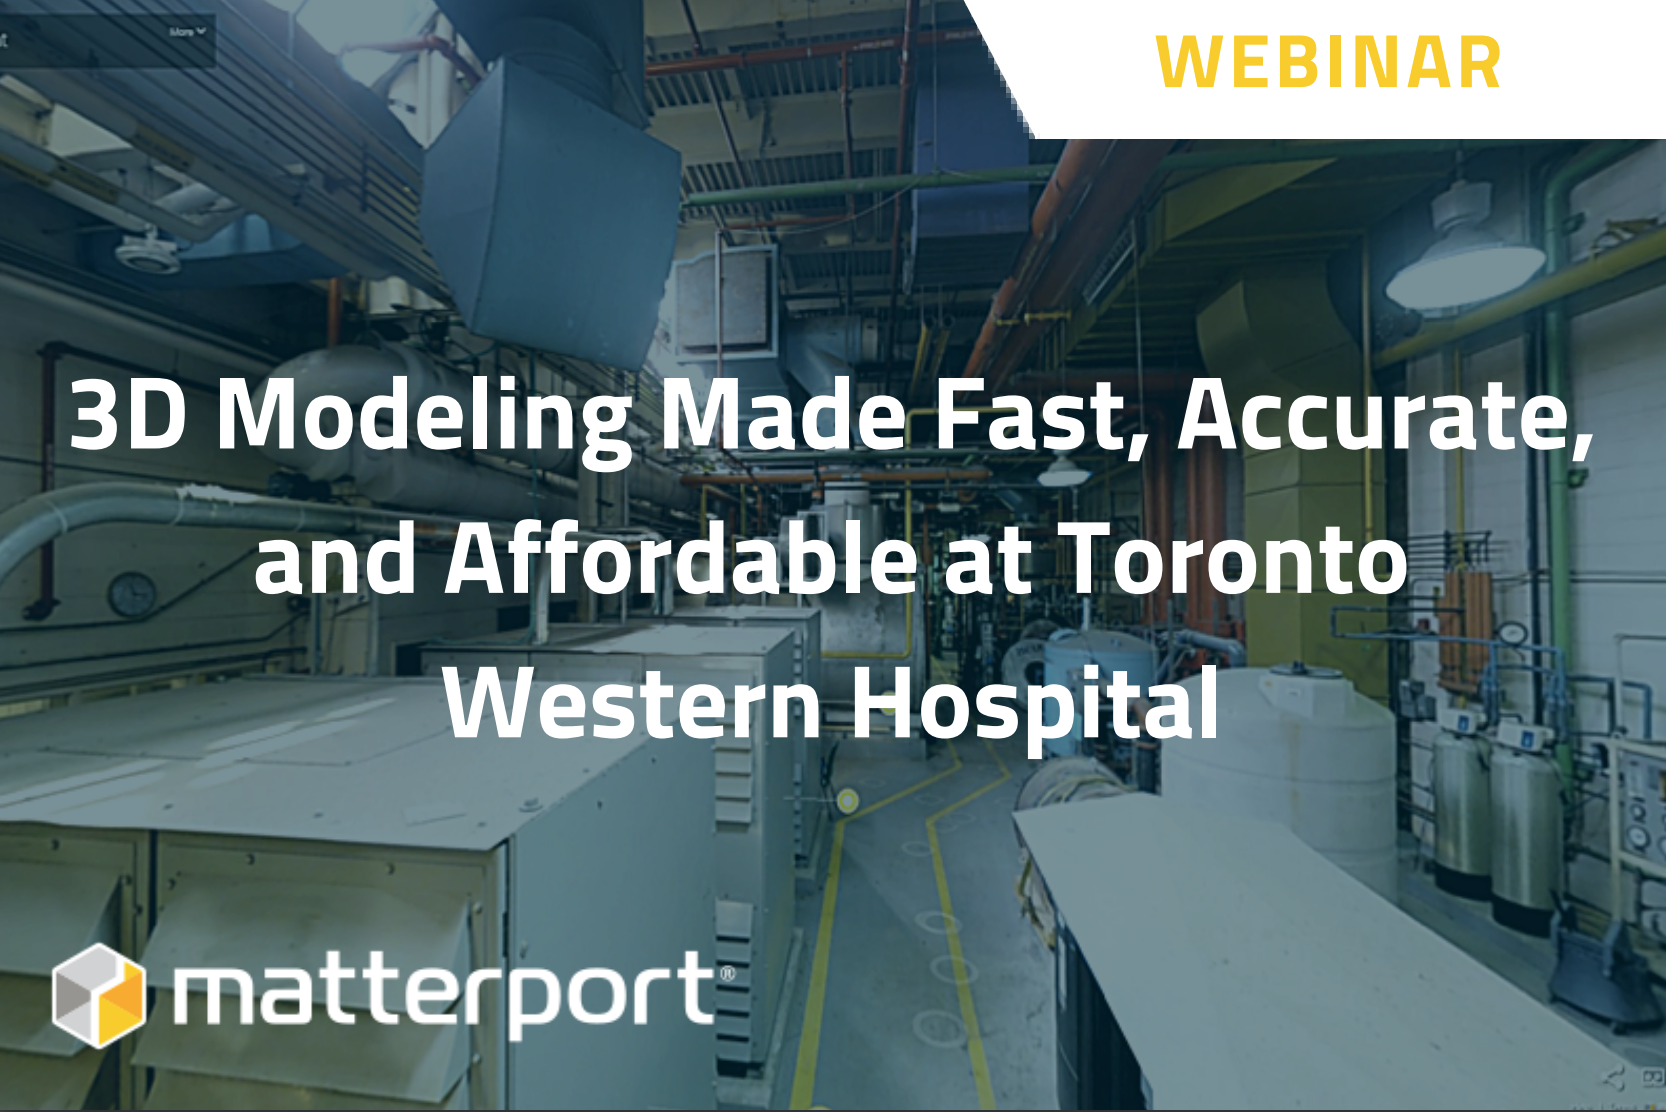 3D Modeling Made Fast, Accurate, and Affordable at Toronto Western Hospital